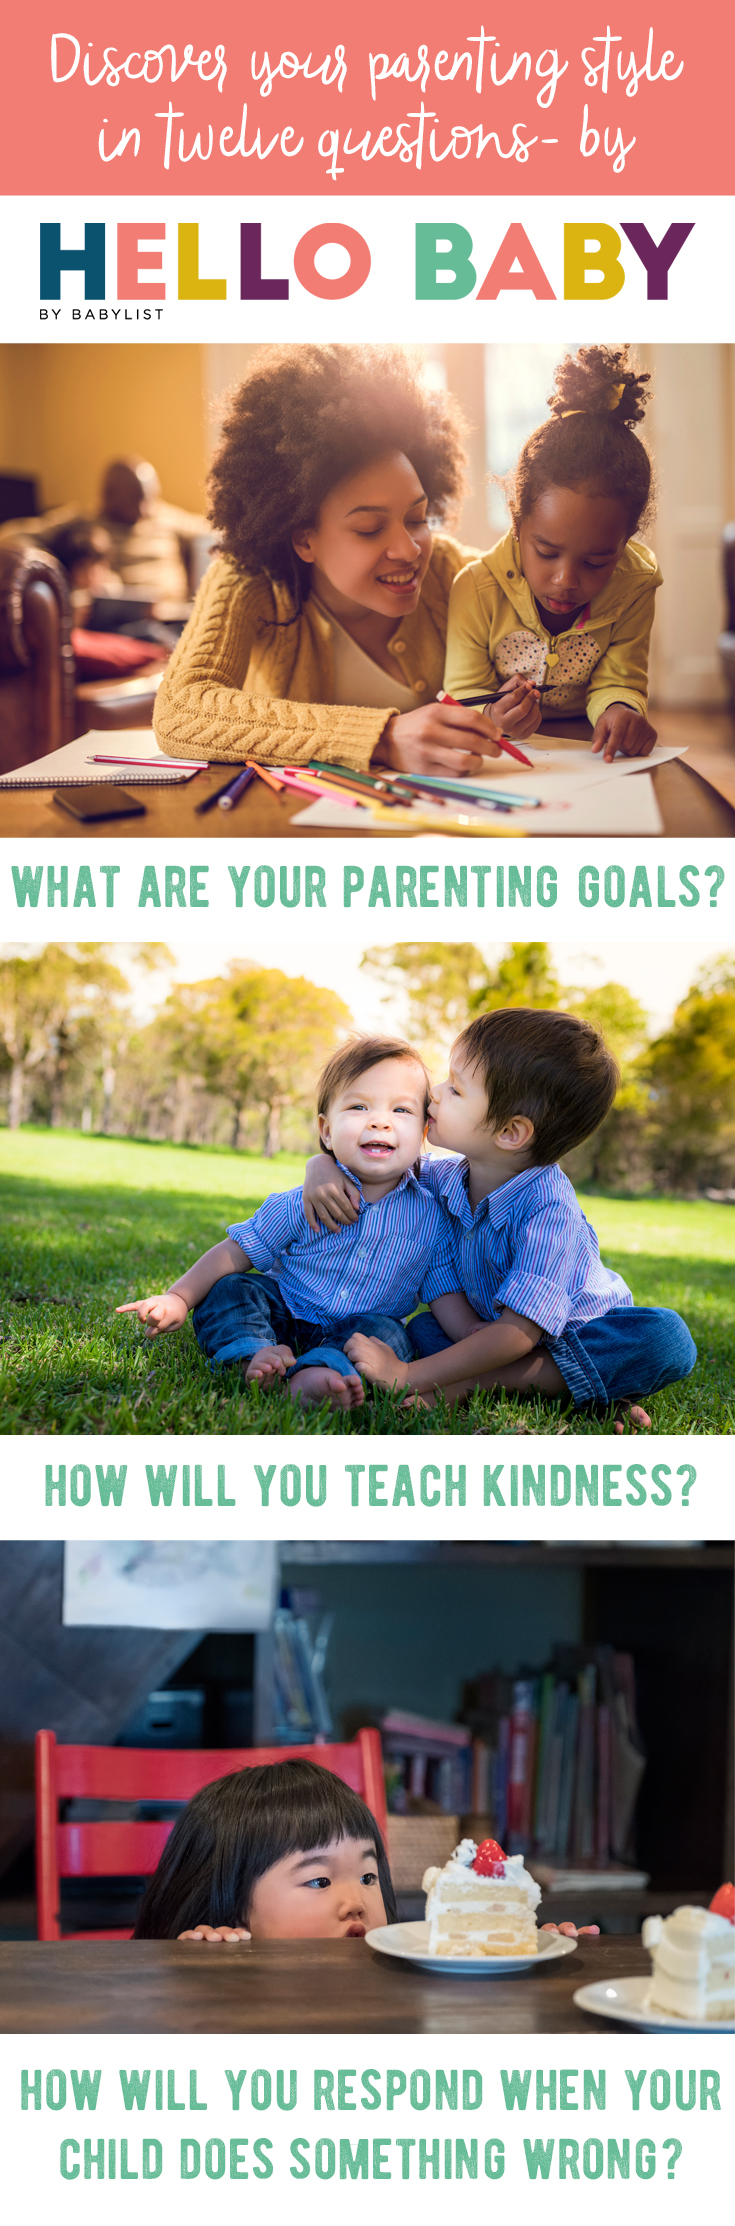 parenting essays Authoritative parenting styles adapt well to most children as its approach is less likely to be rendered too severe or impractical thus allowing it more opportunities.